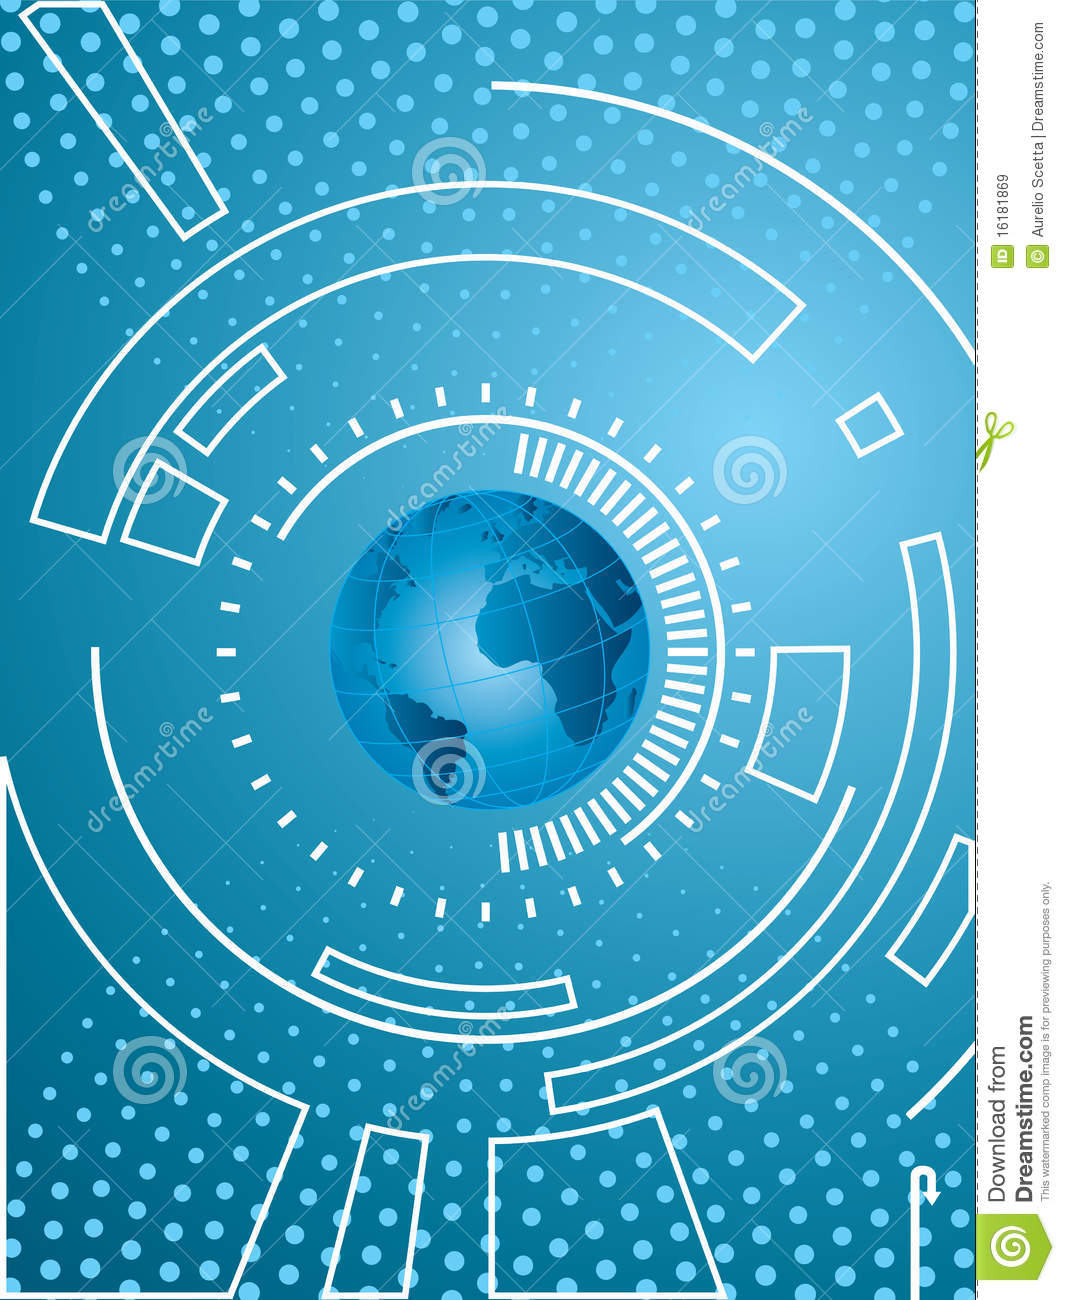 Technology Management Image: Vector Background With Technology Stock Vector